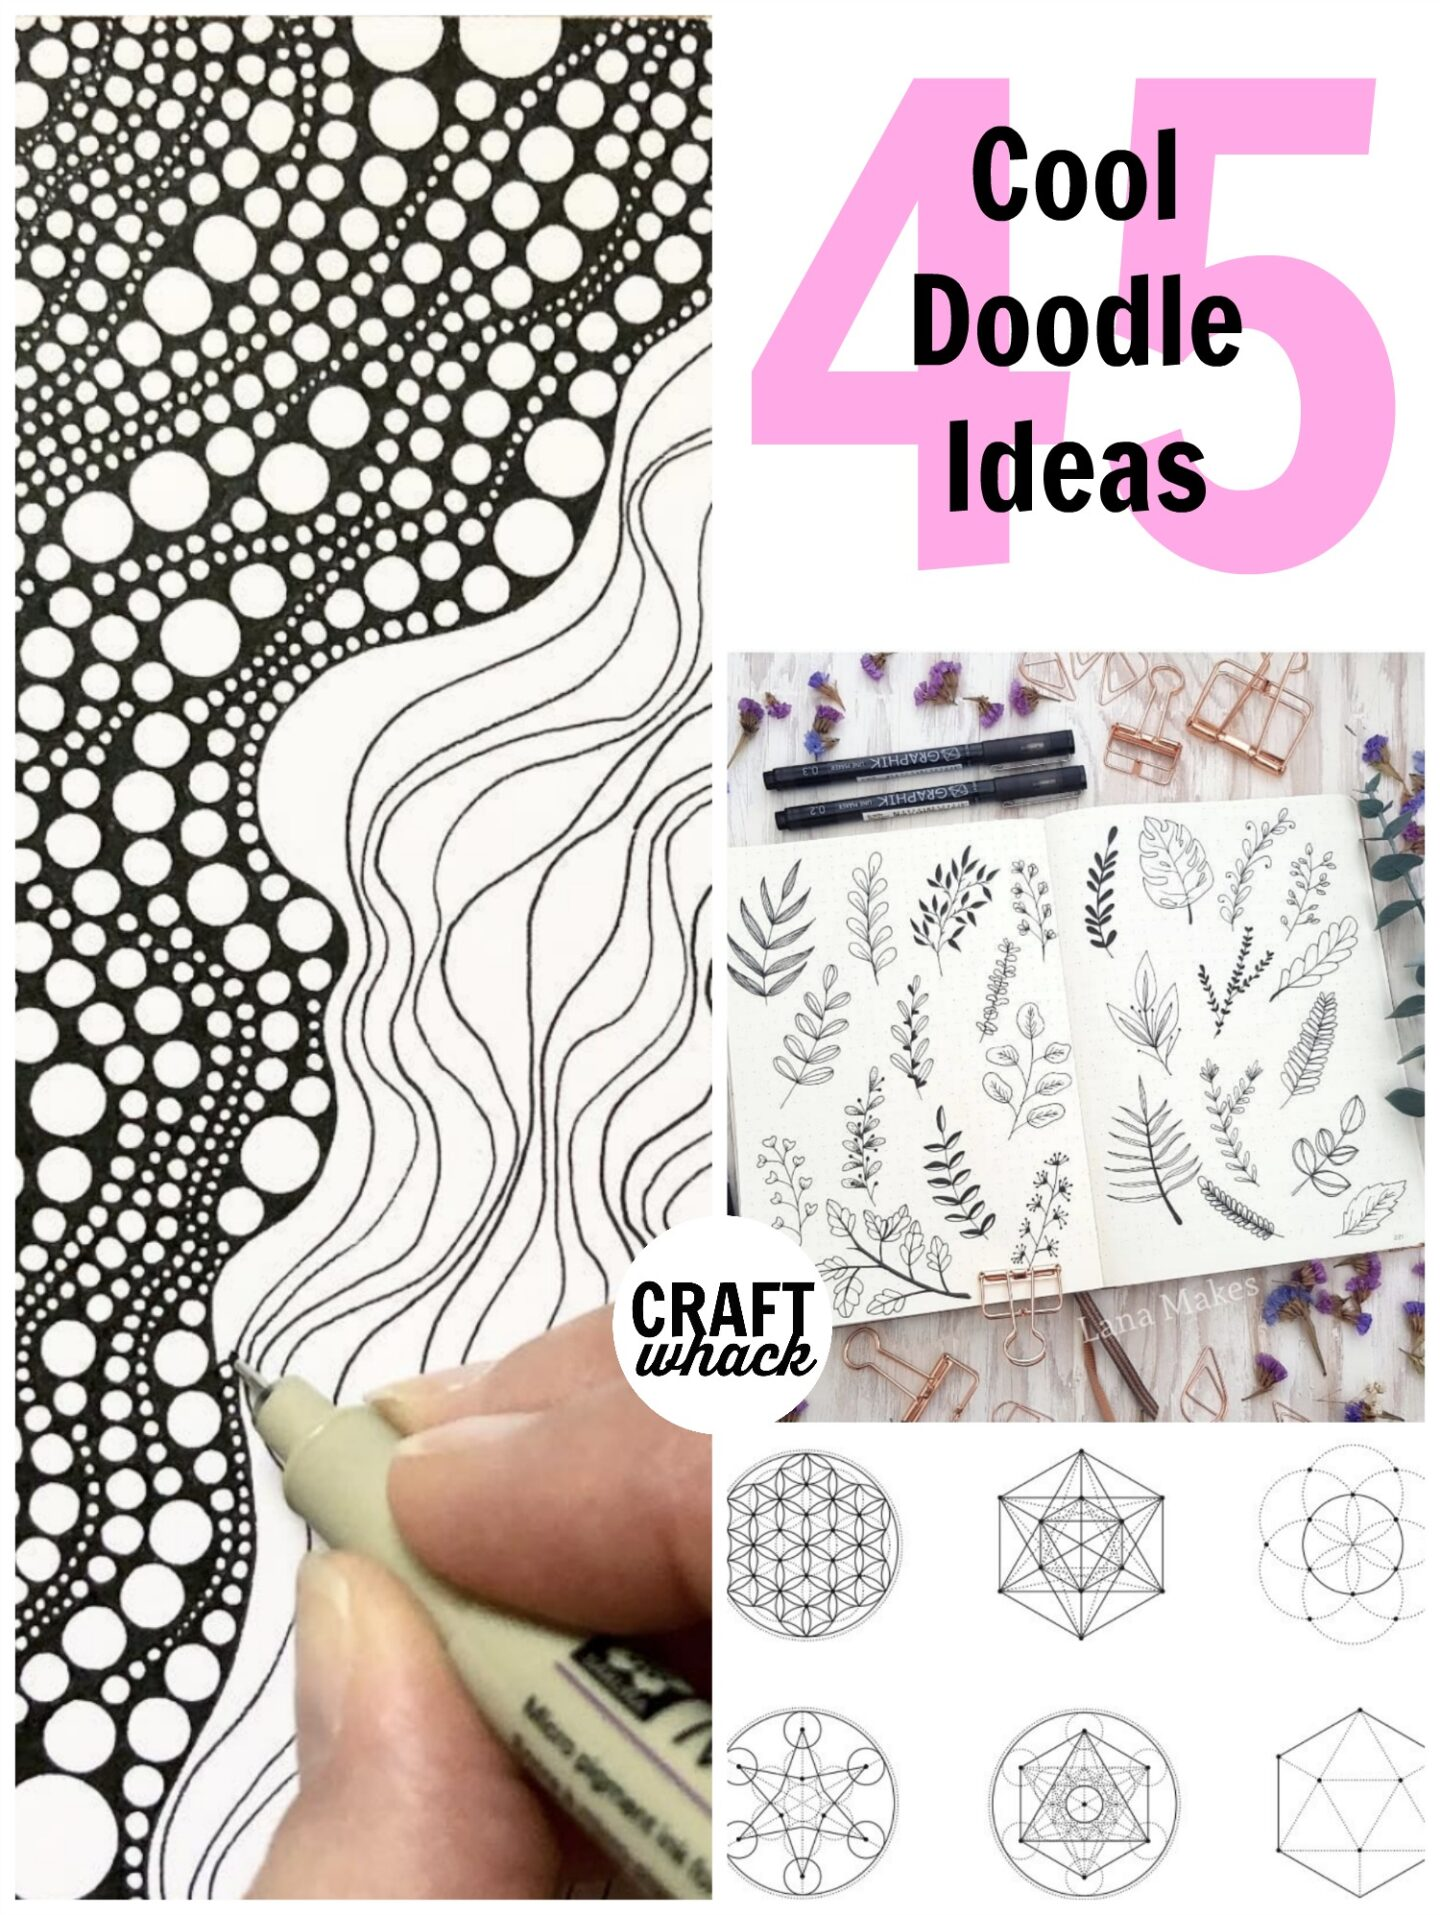 45 Super Cool Doodle Ideas Craftwhack